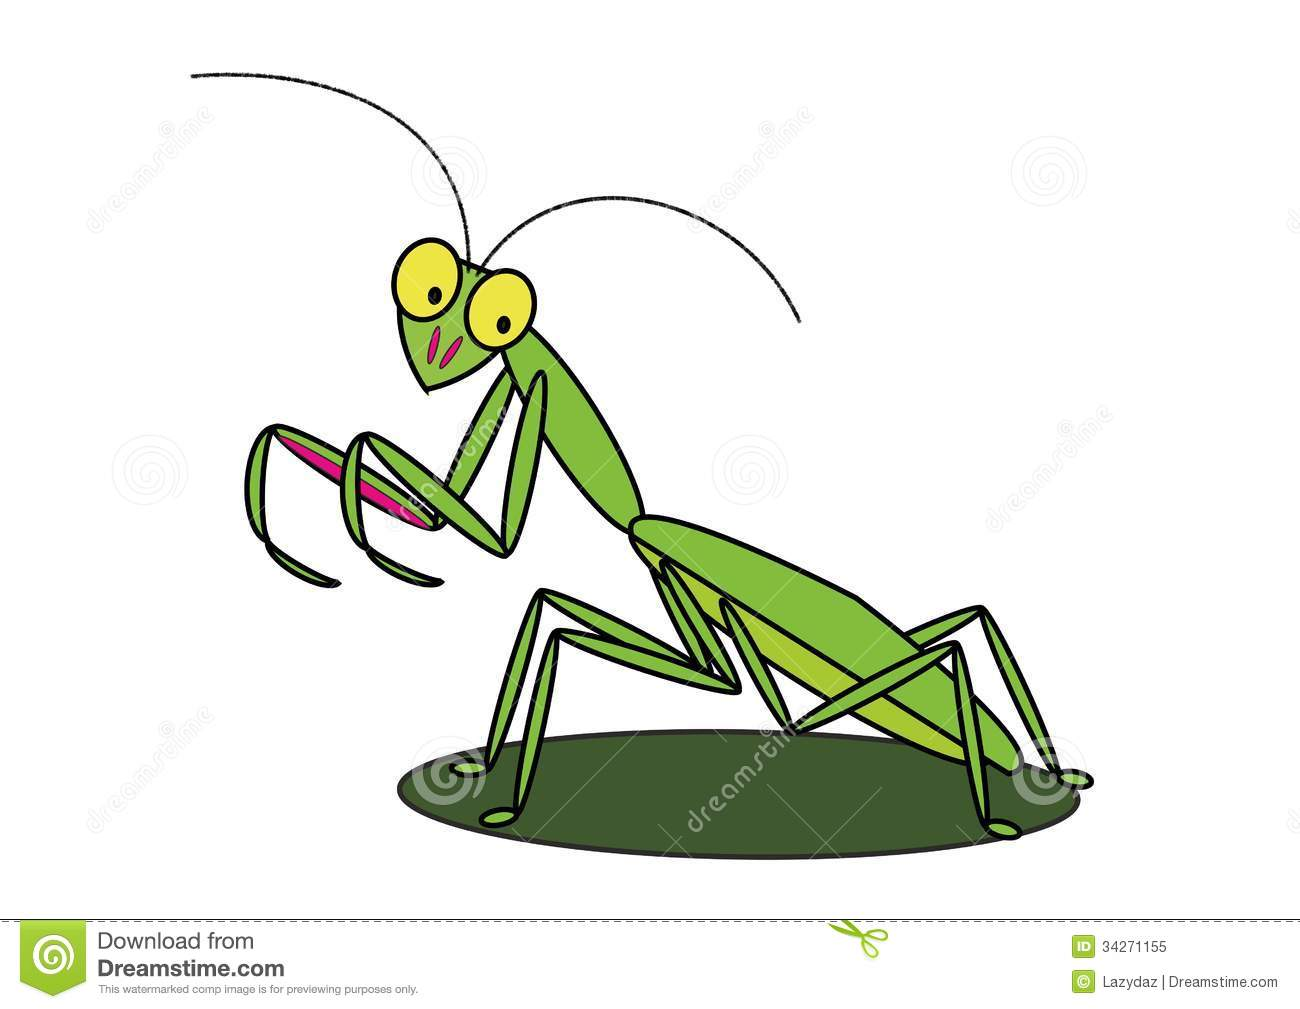 Cartoon Praying Mantis Royalty Free Stock Photo - Image: 34271155